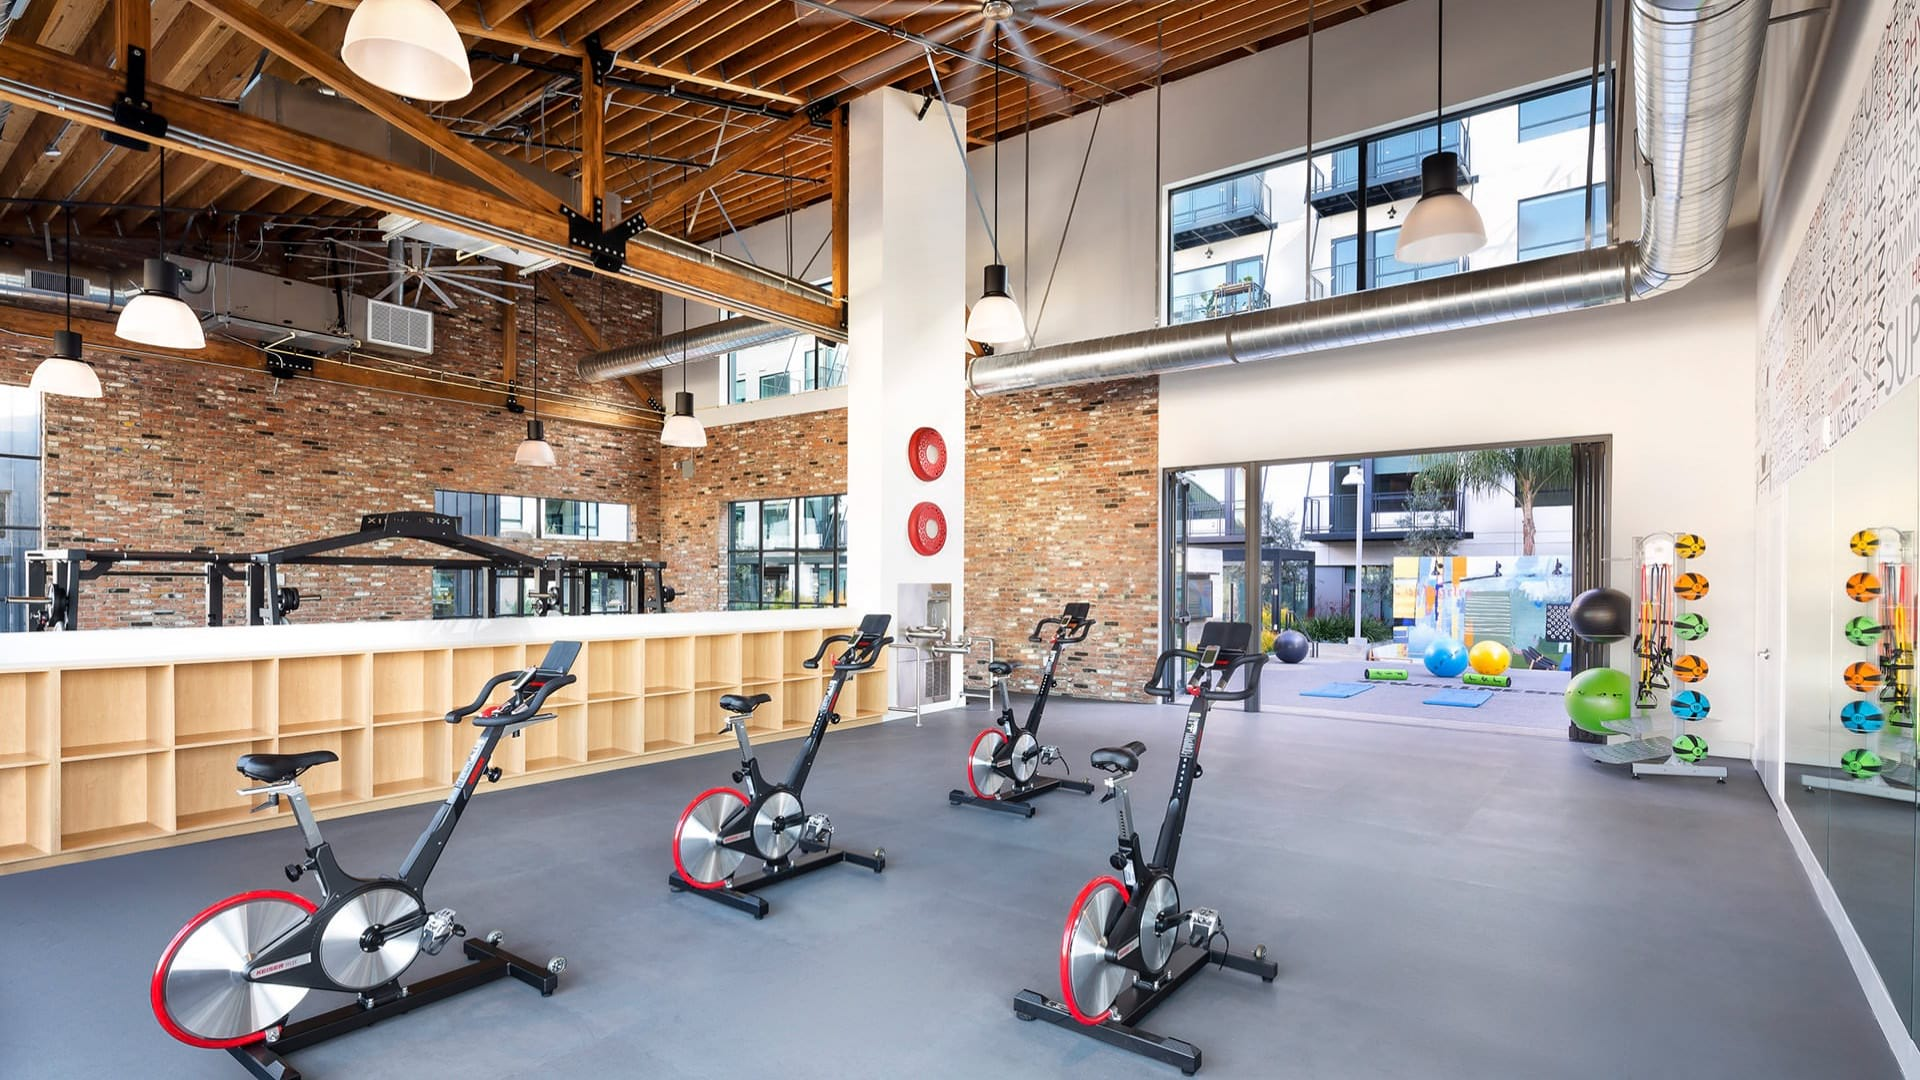 spin cycles in fitness center with exposed ceiling beams and air ducts